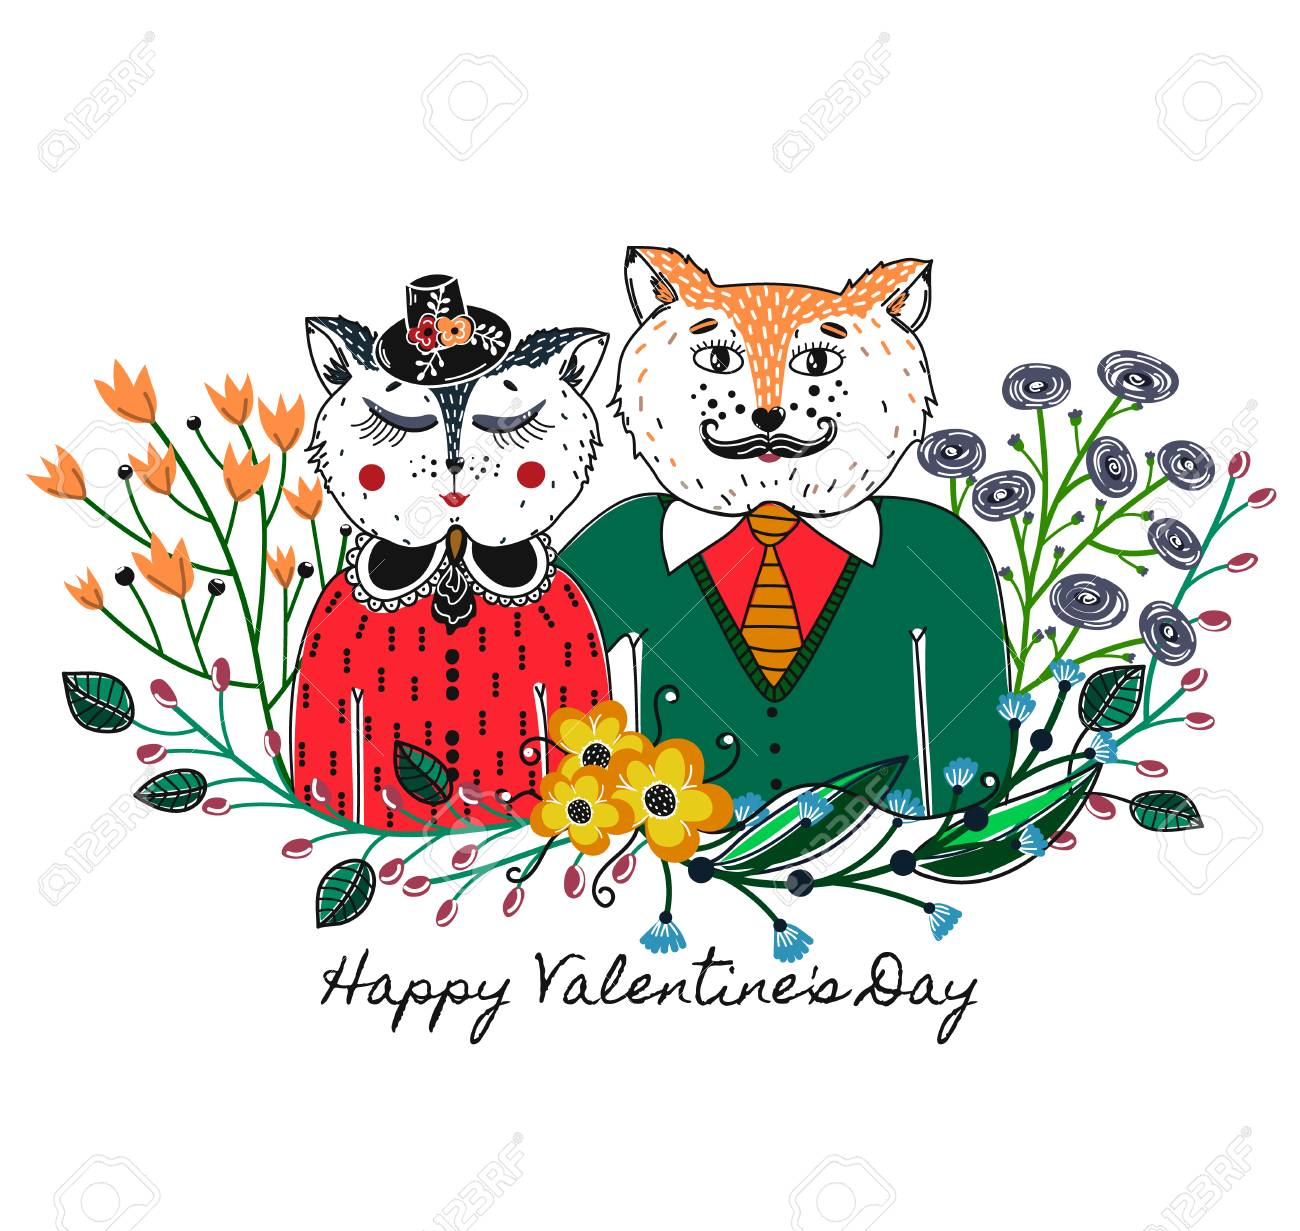 Enamoured cats greeting background on valentines day feast greeting background on valentines day feast of love holiday floral kristyandbryce Choice Image